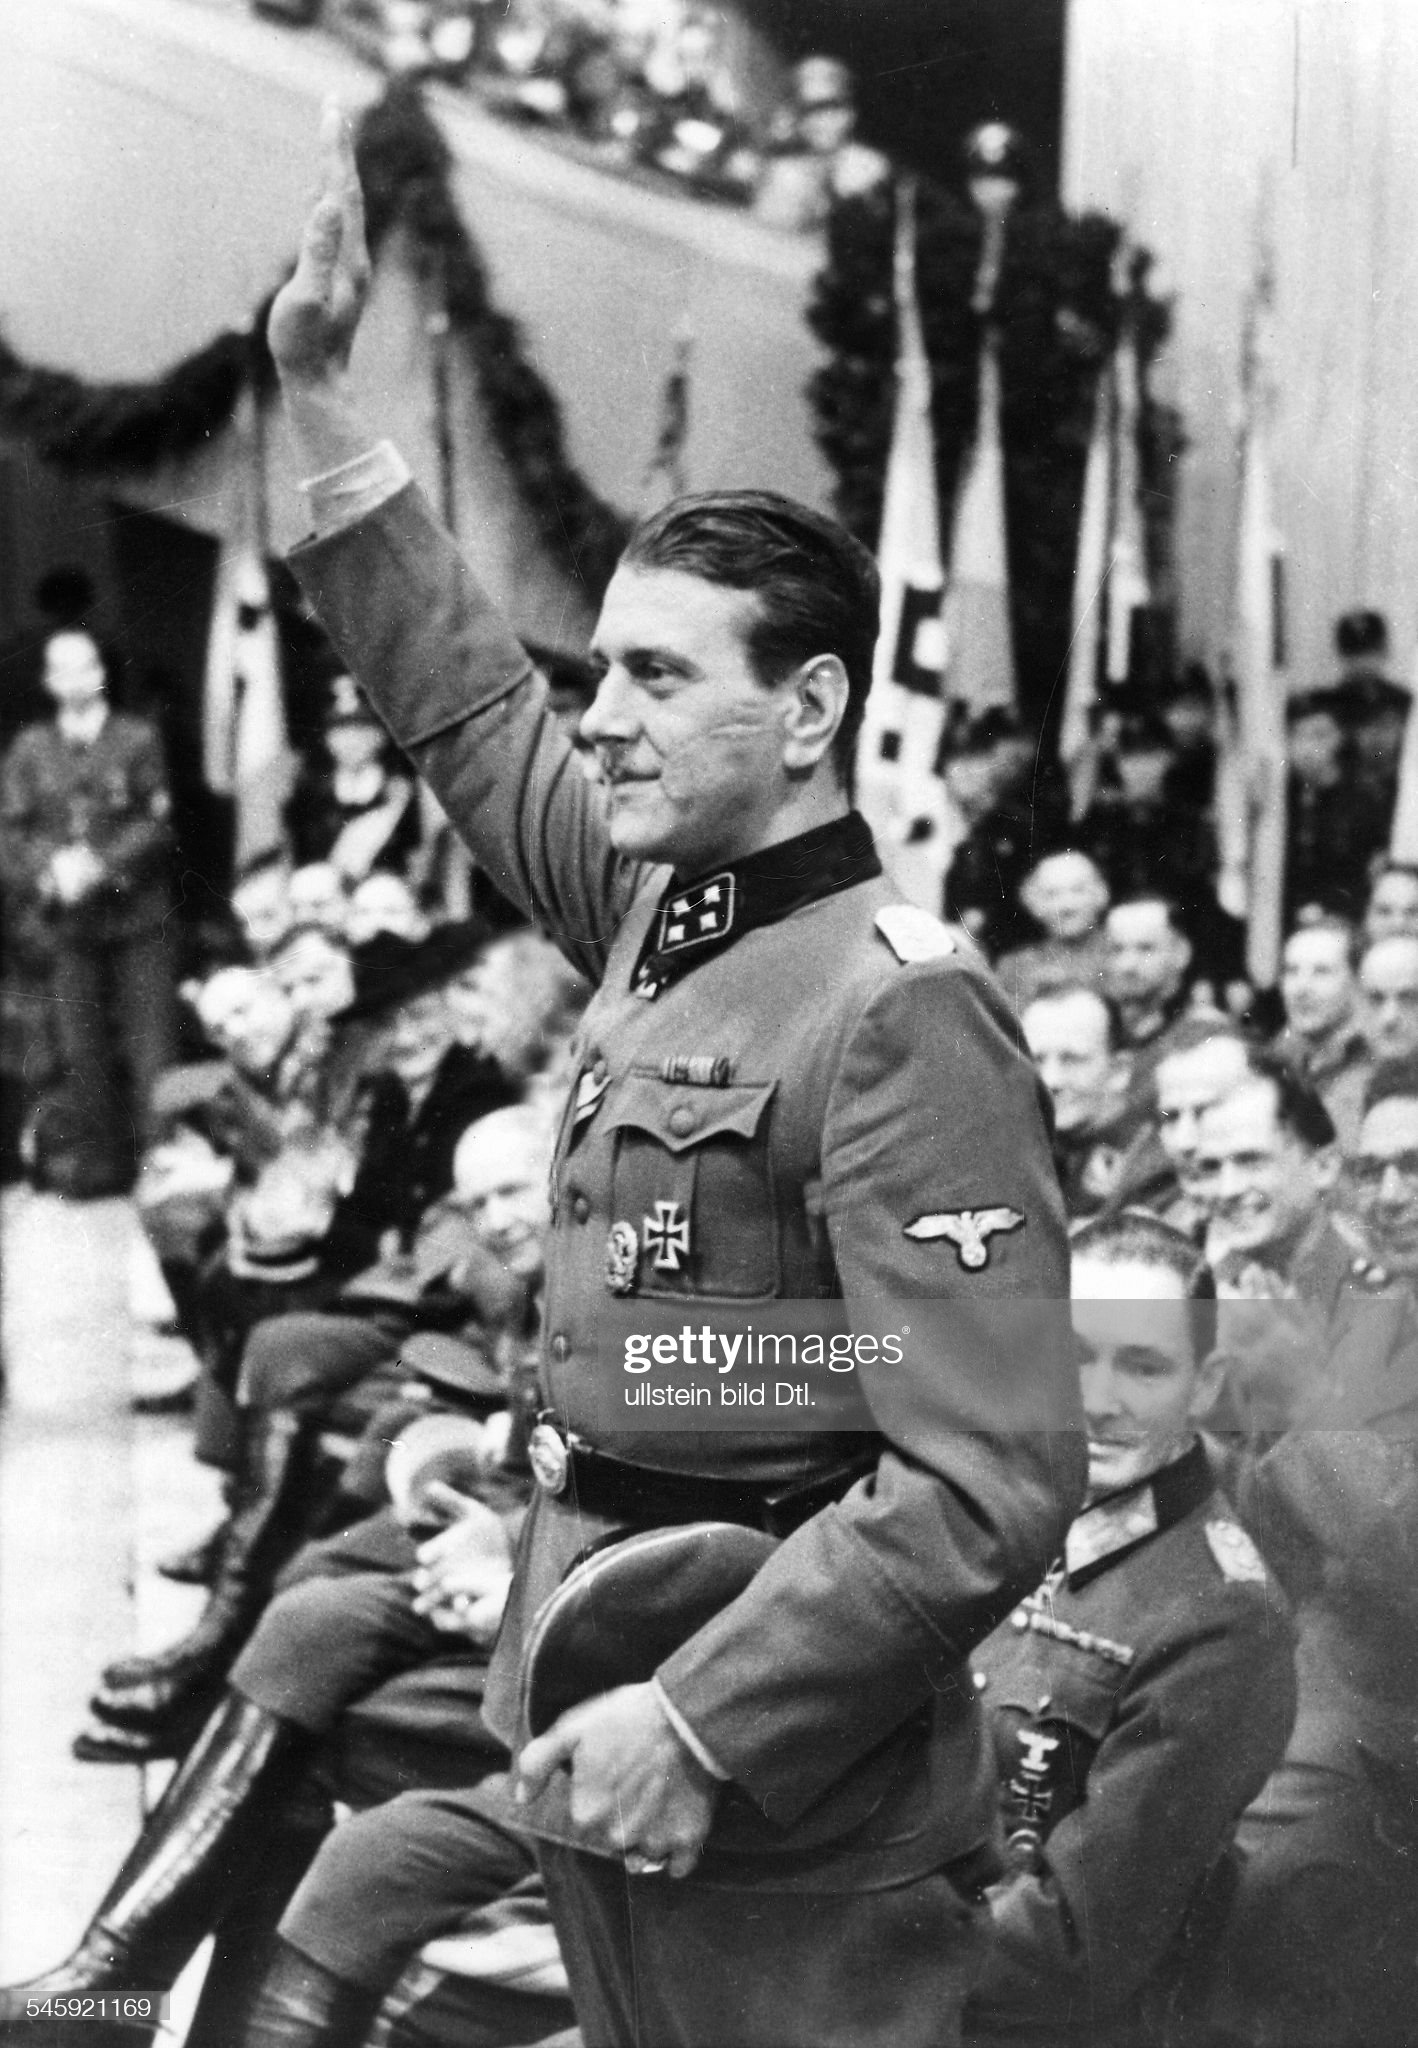 قائد الكوماندوس النازي Otto Skorzeny  Ngerman-ss-officer-skorzeny-the-liberator-of-benito-mussolini-at-a-picture-id545921169?s=2048x2048